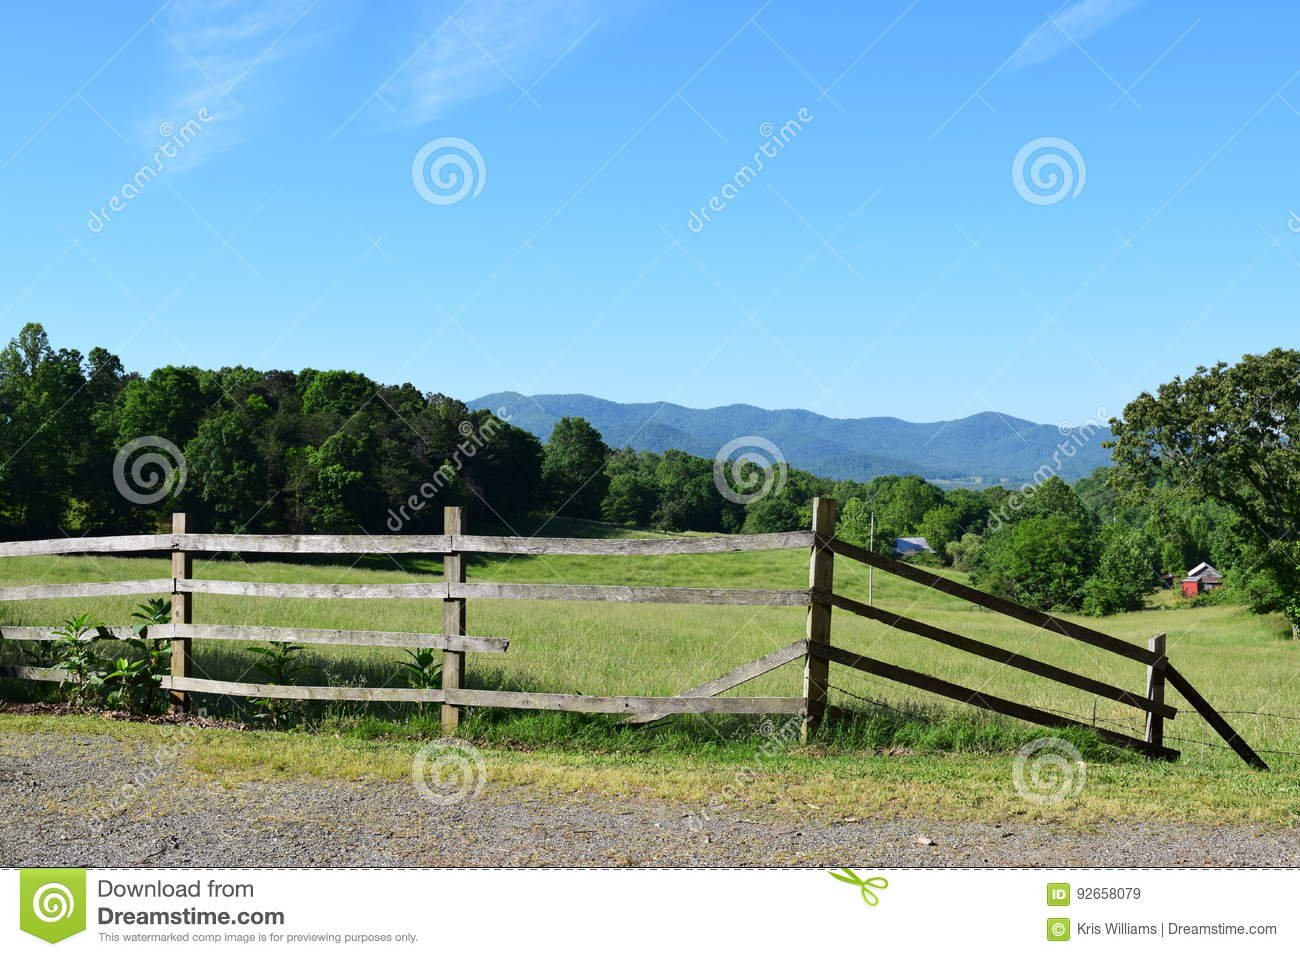 Western NC Mountain farm and pasture